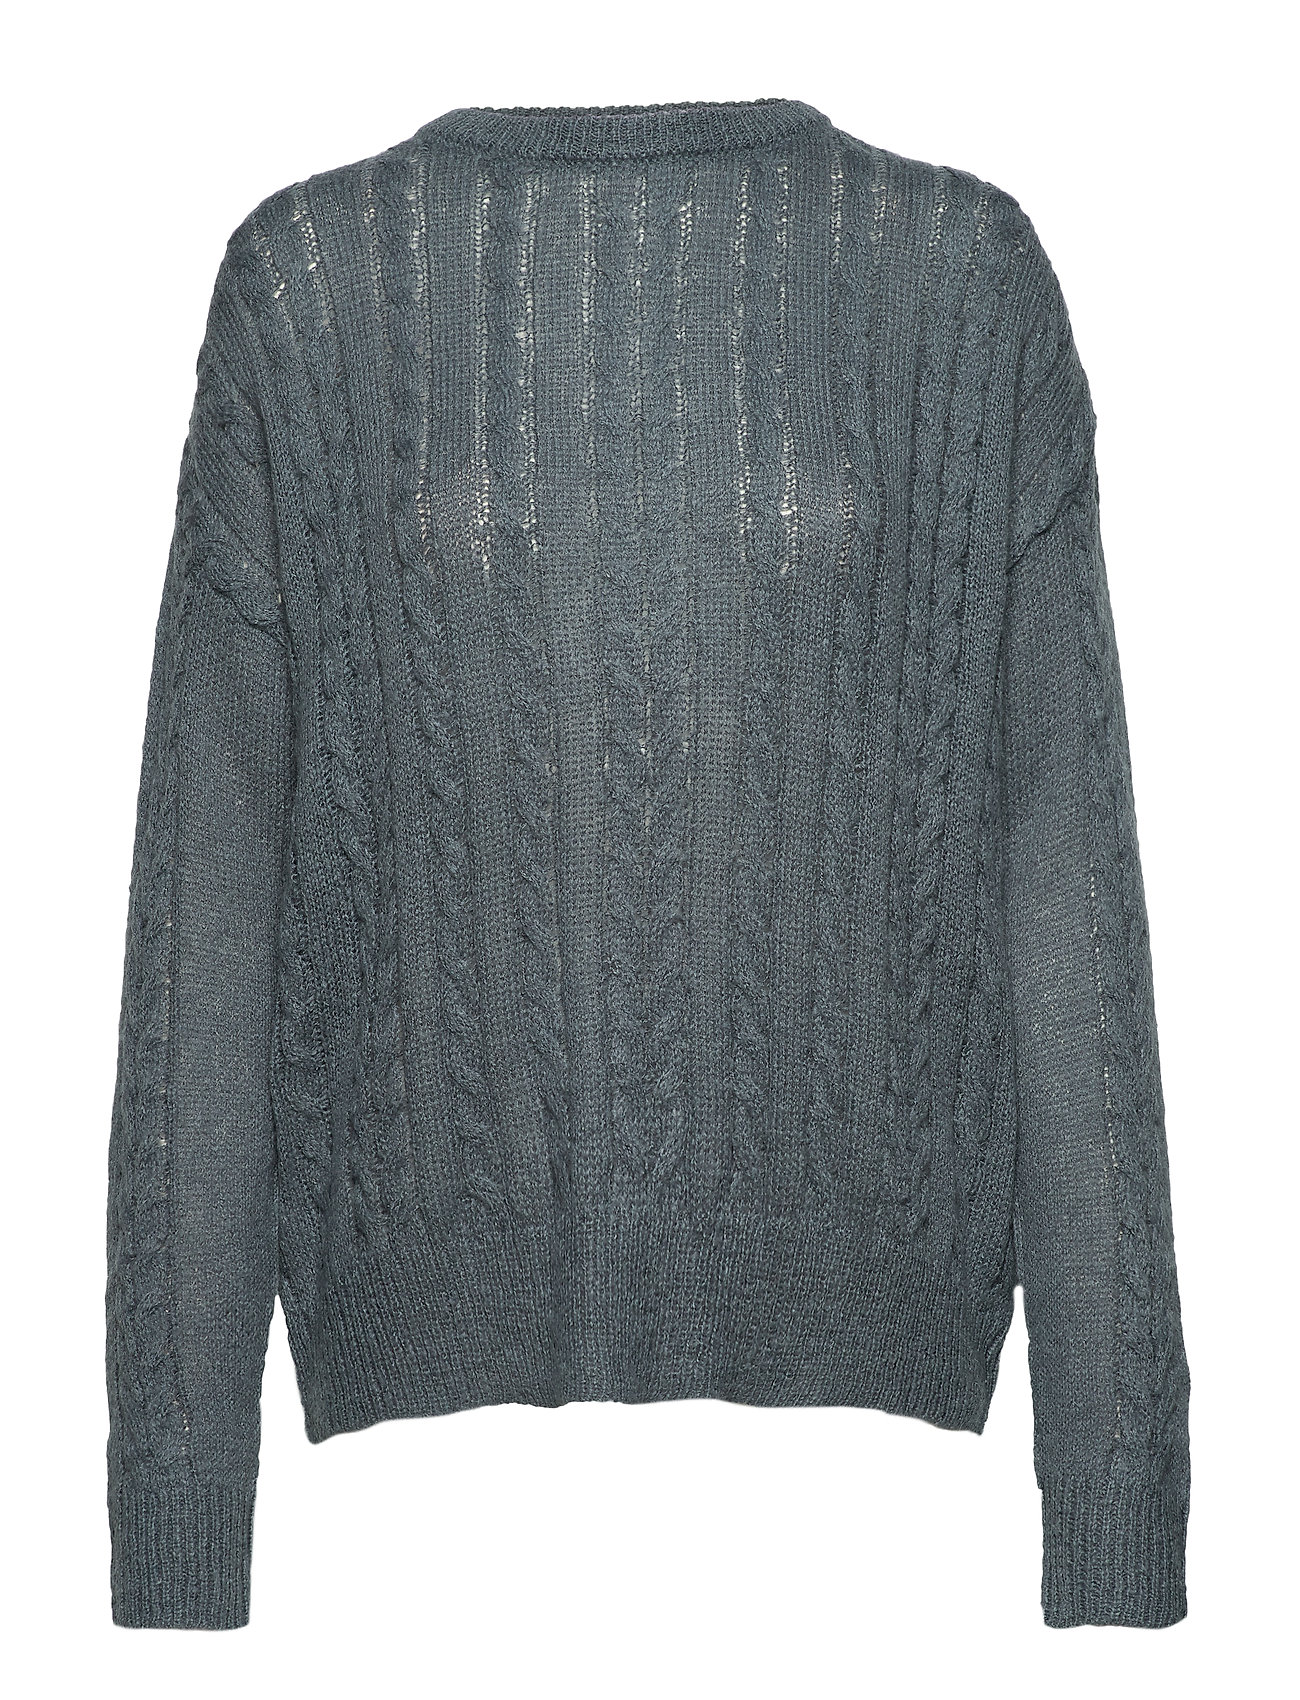 Soft Rebels Calby O-neck Knit - BLUE MIRAGE